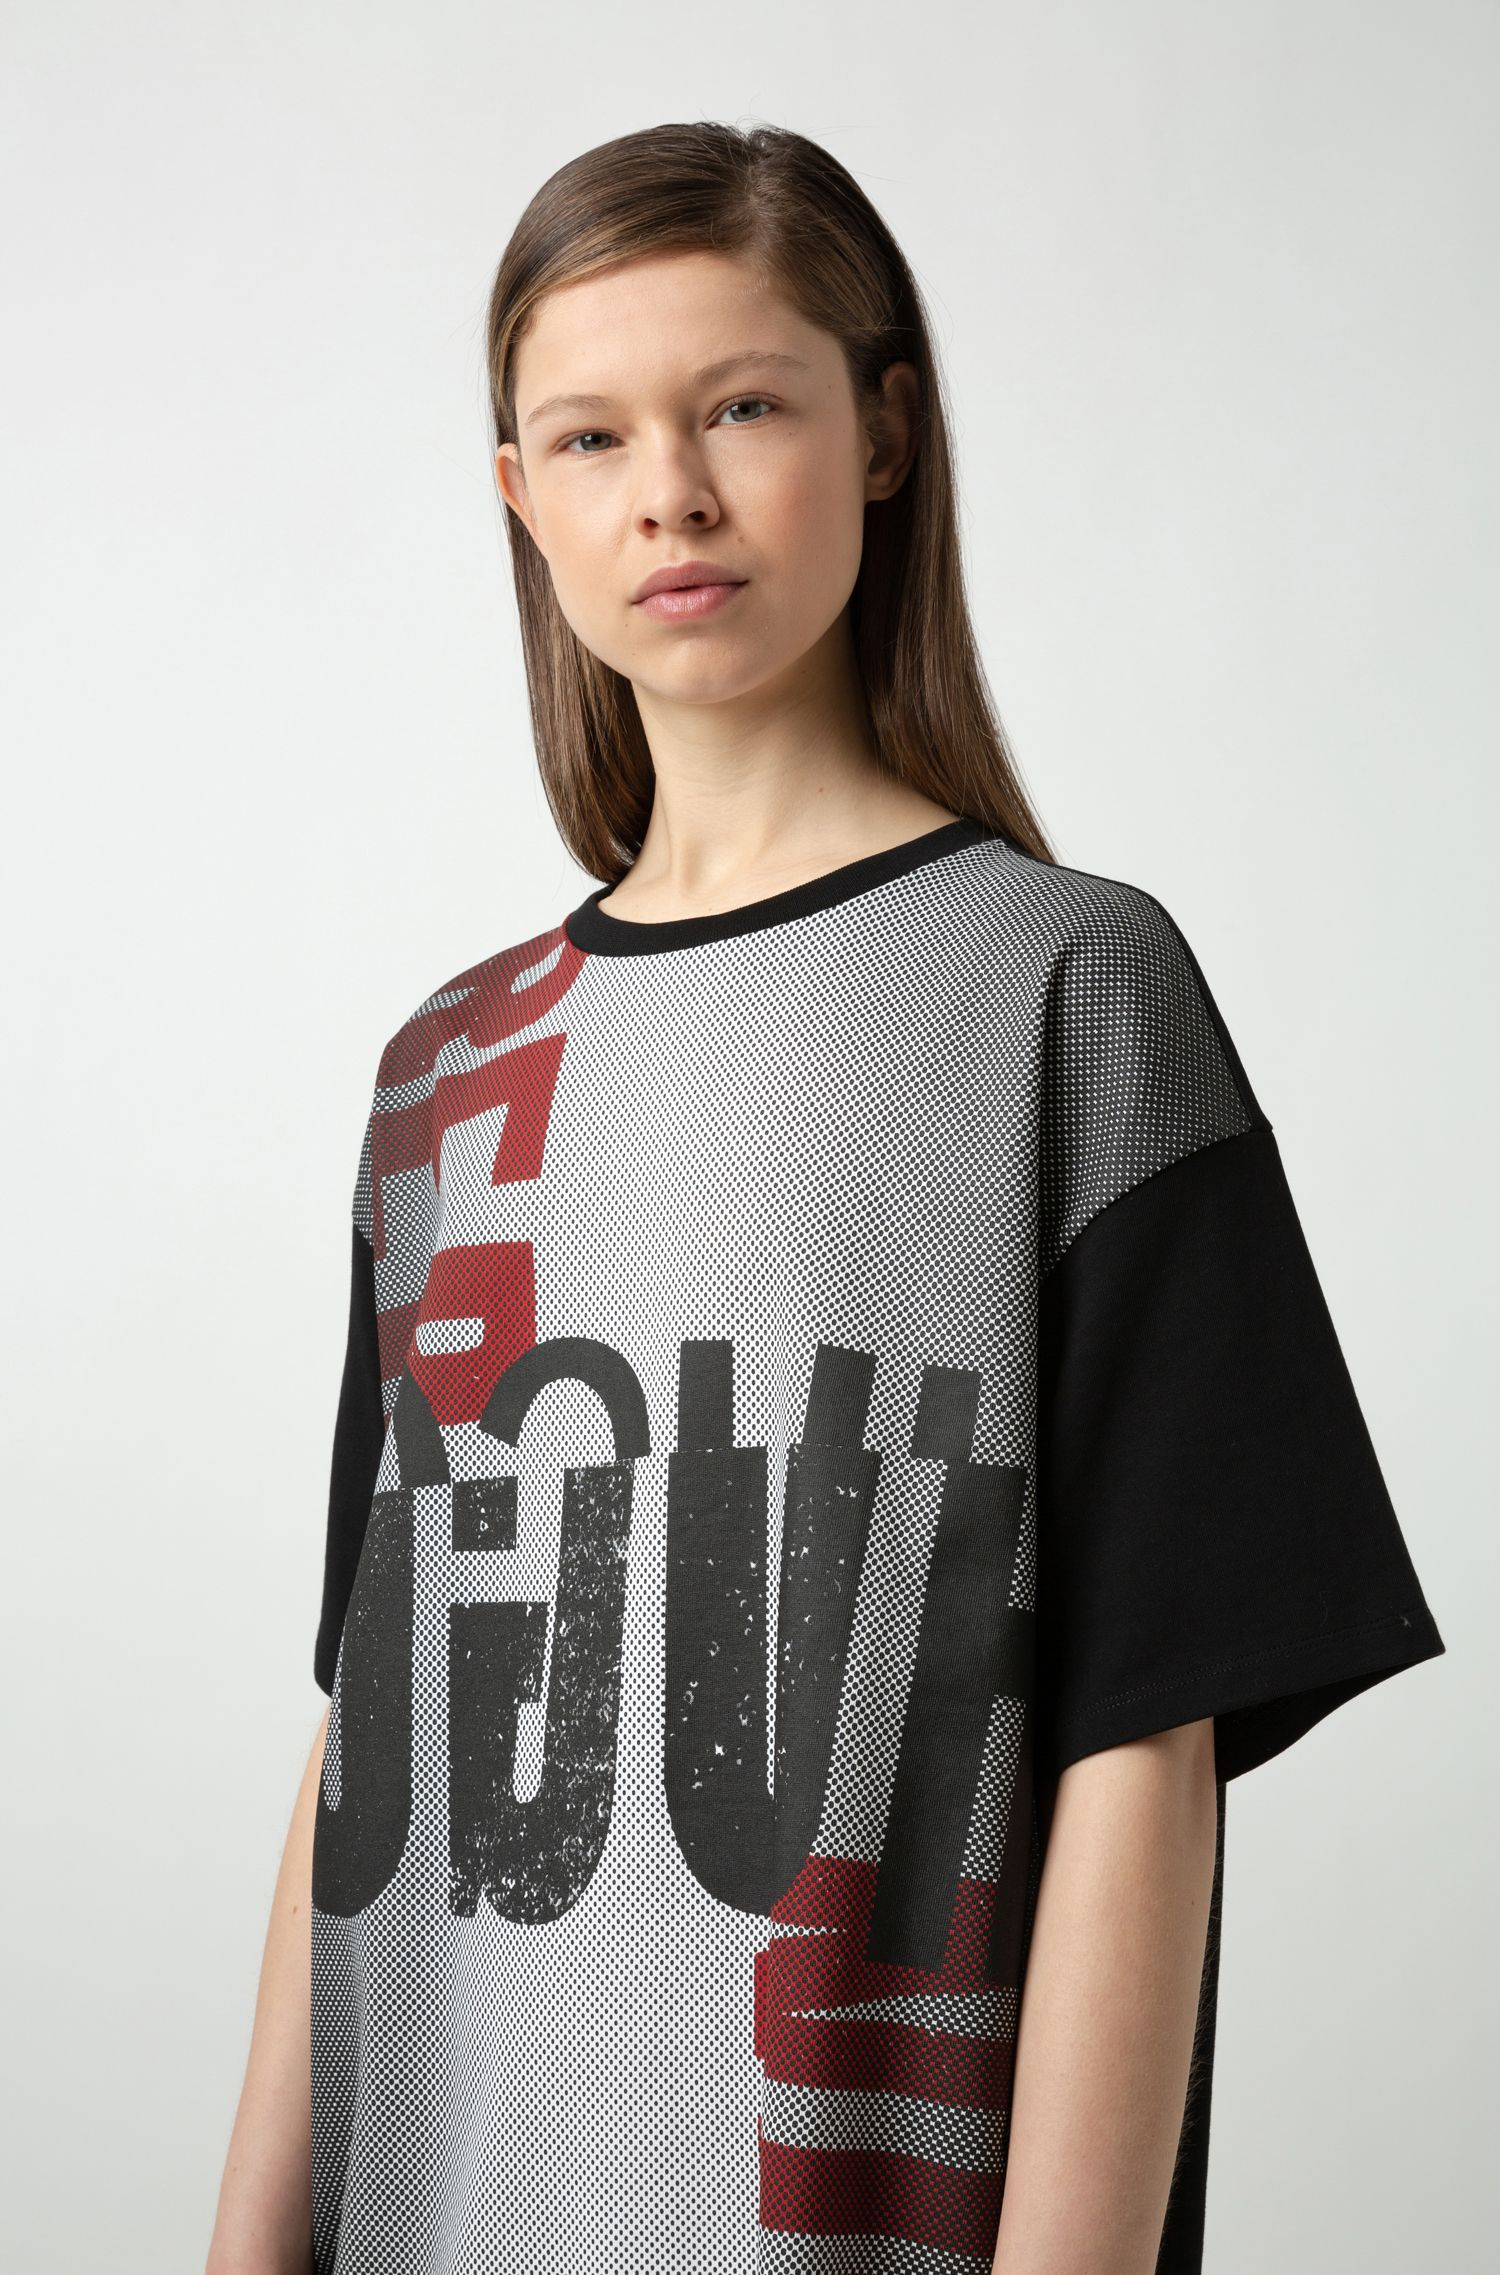 Robe t-shirt Oversized Fit à motif artistique berlinois, Noir